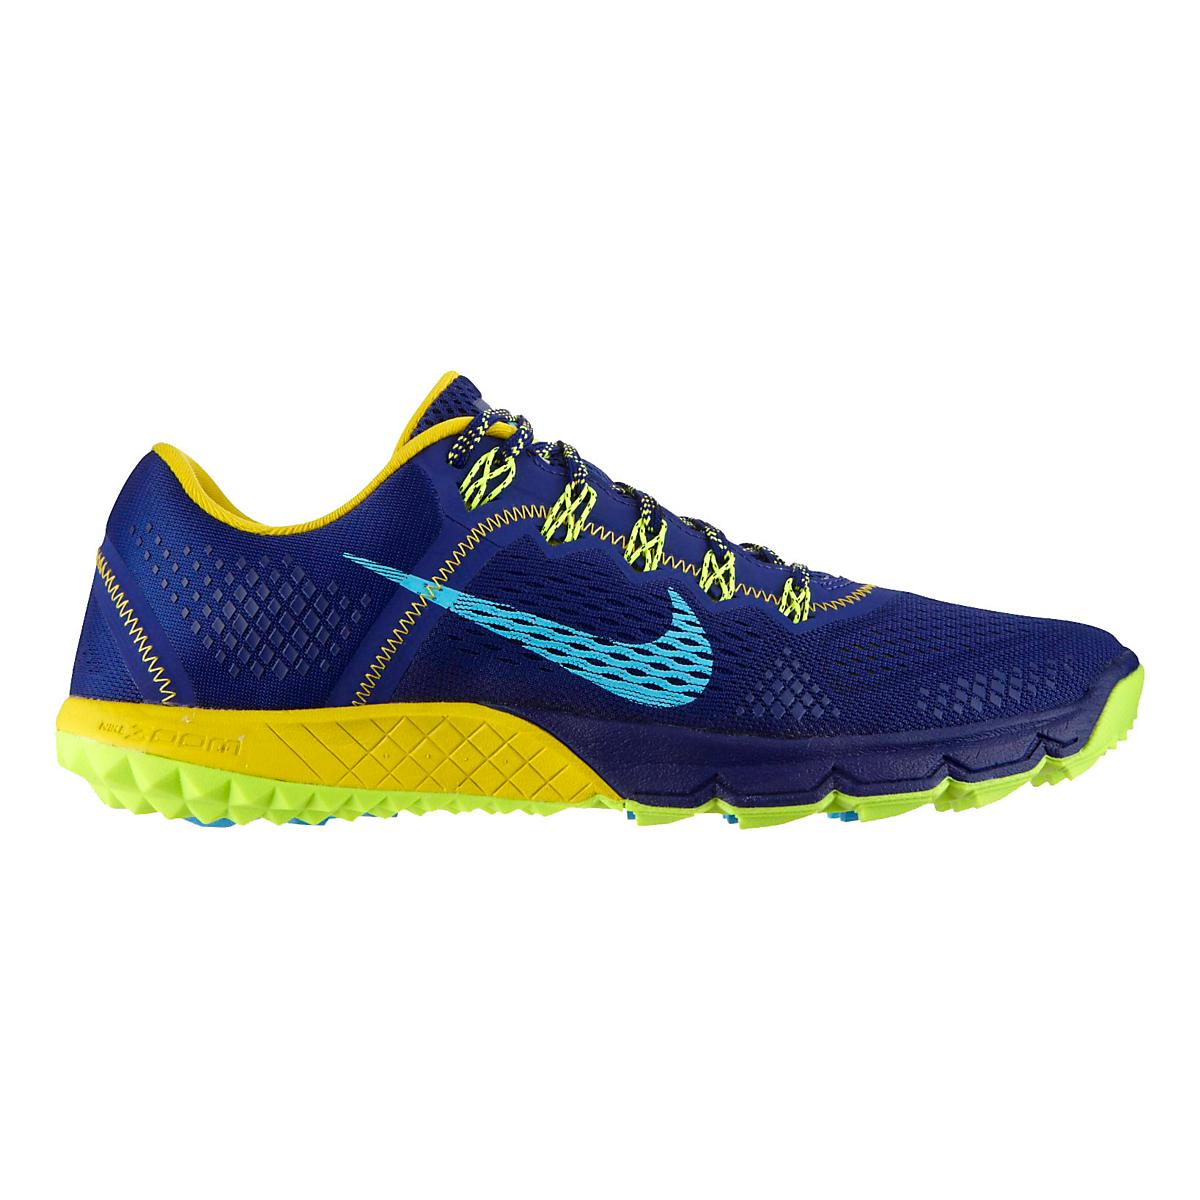 e6204441a7790 Mens Nike Zoom Terra Kiger Trail Running Shoe at Road Runner Sports